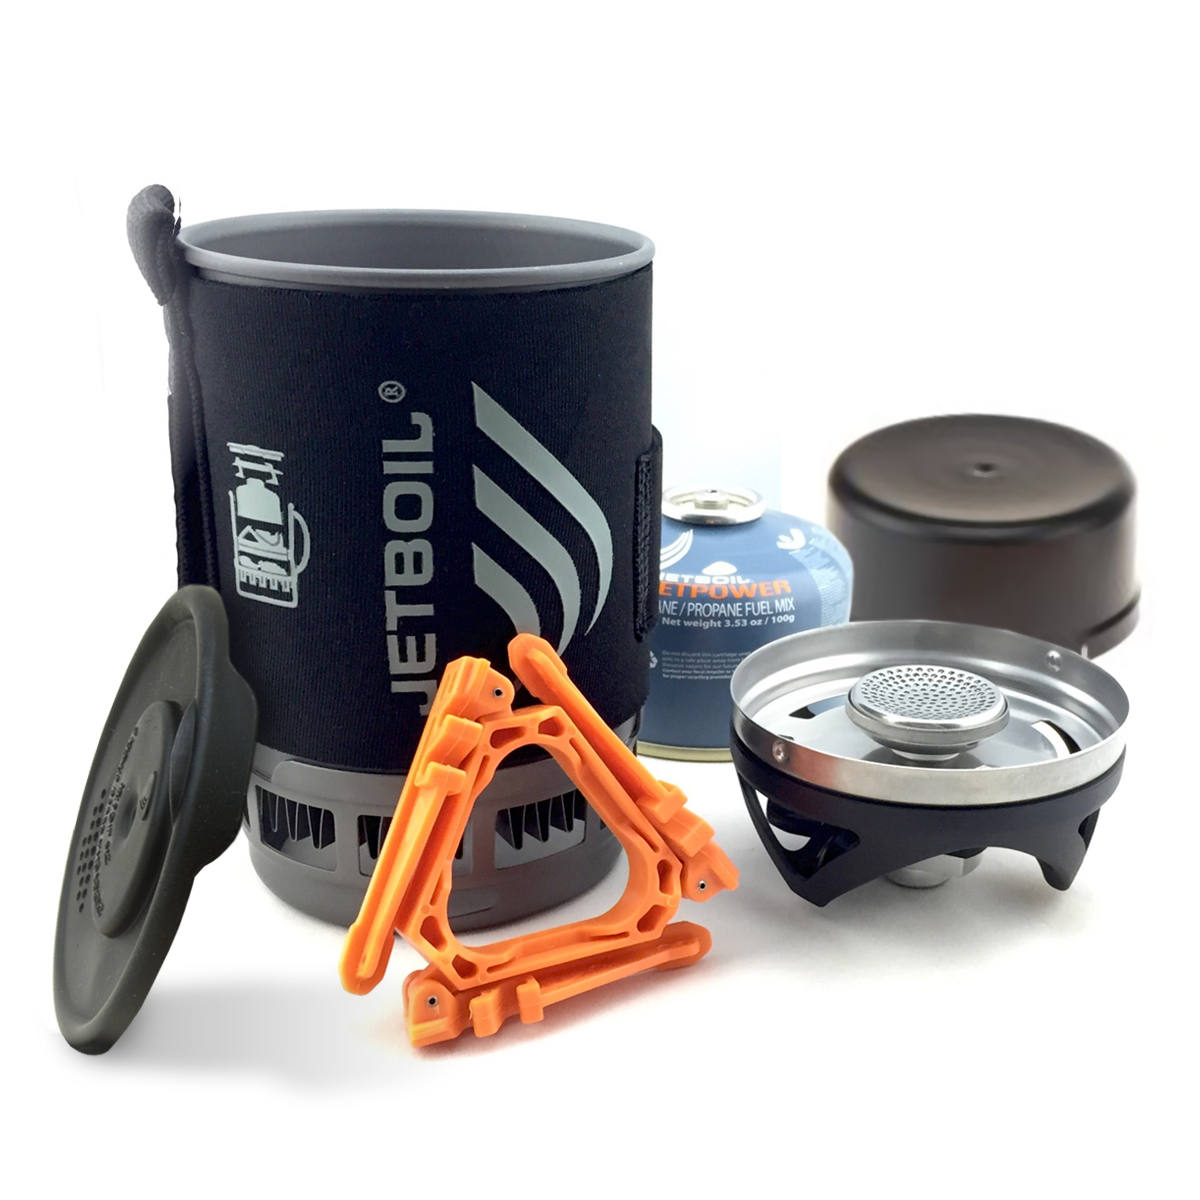 Jetboil Flash Lite carbon